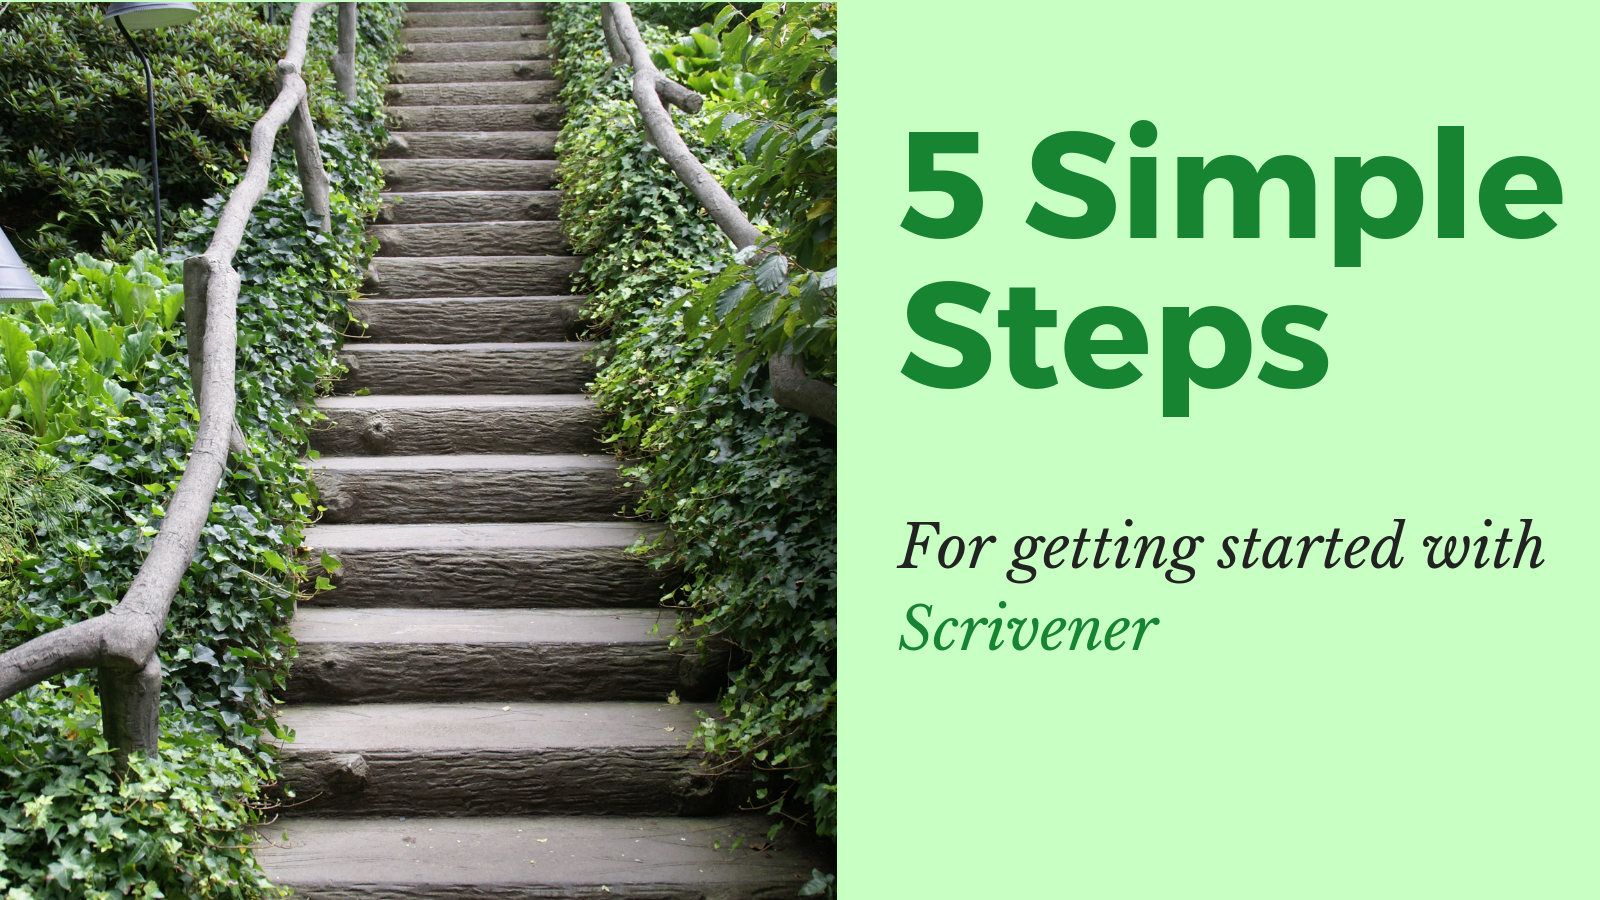 5 Simple Steps to learning Scrivener